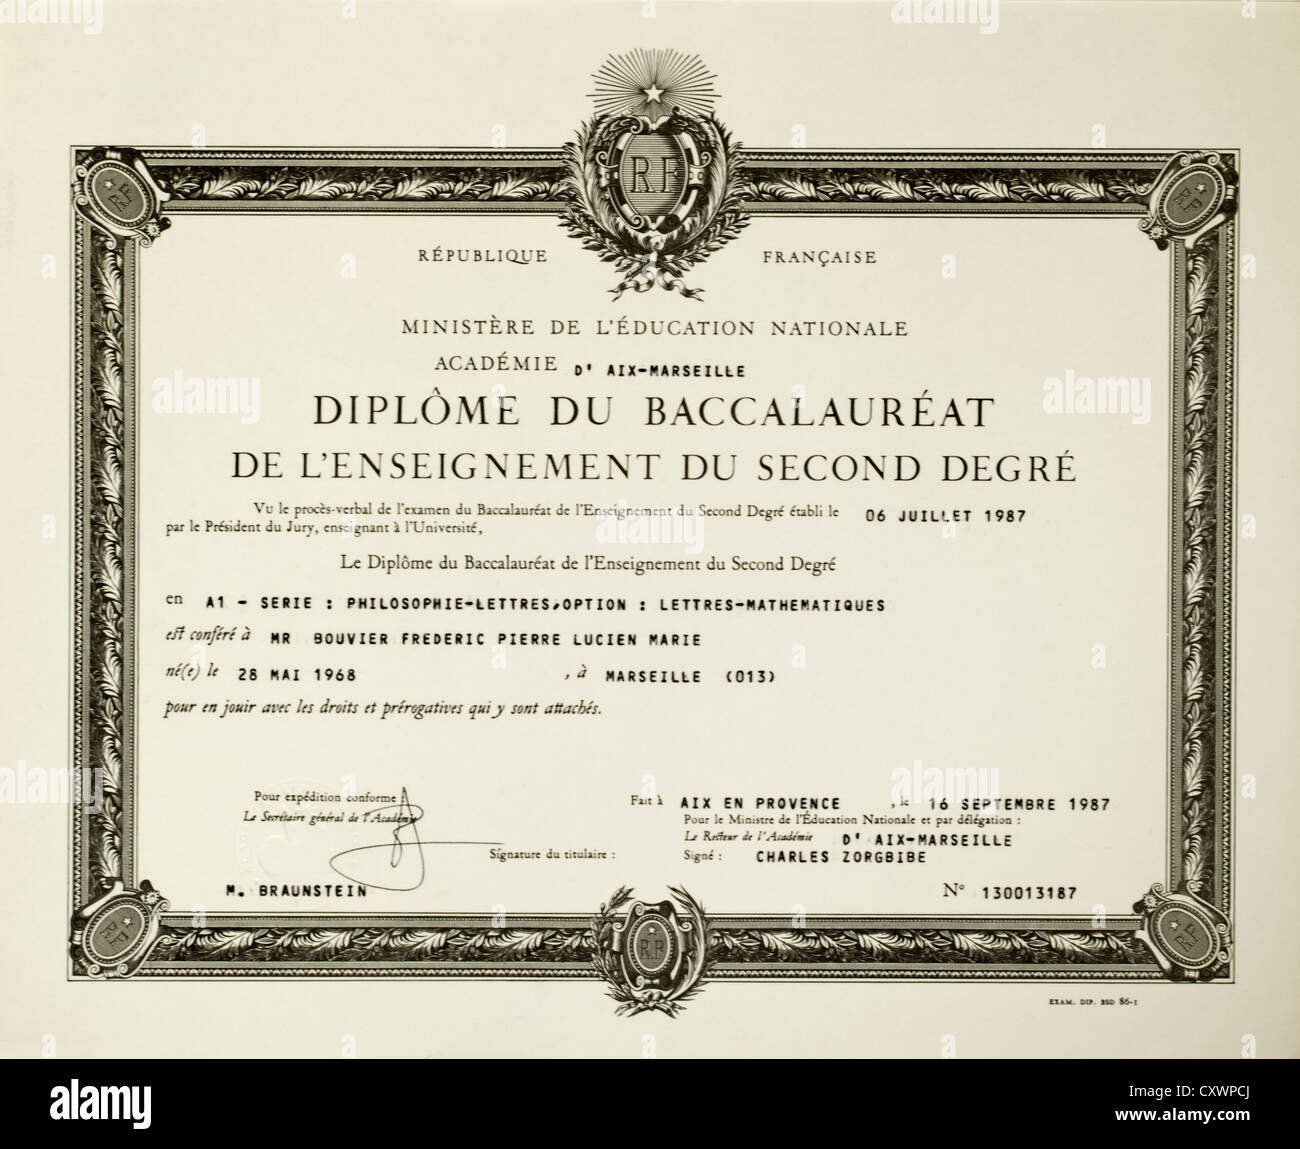 French Baccalaureat diploma - Stock Image